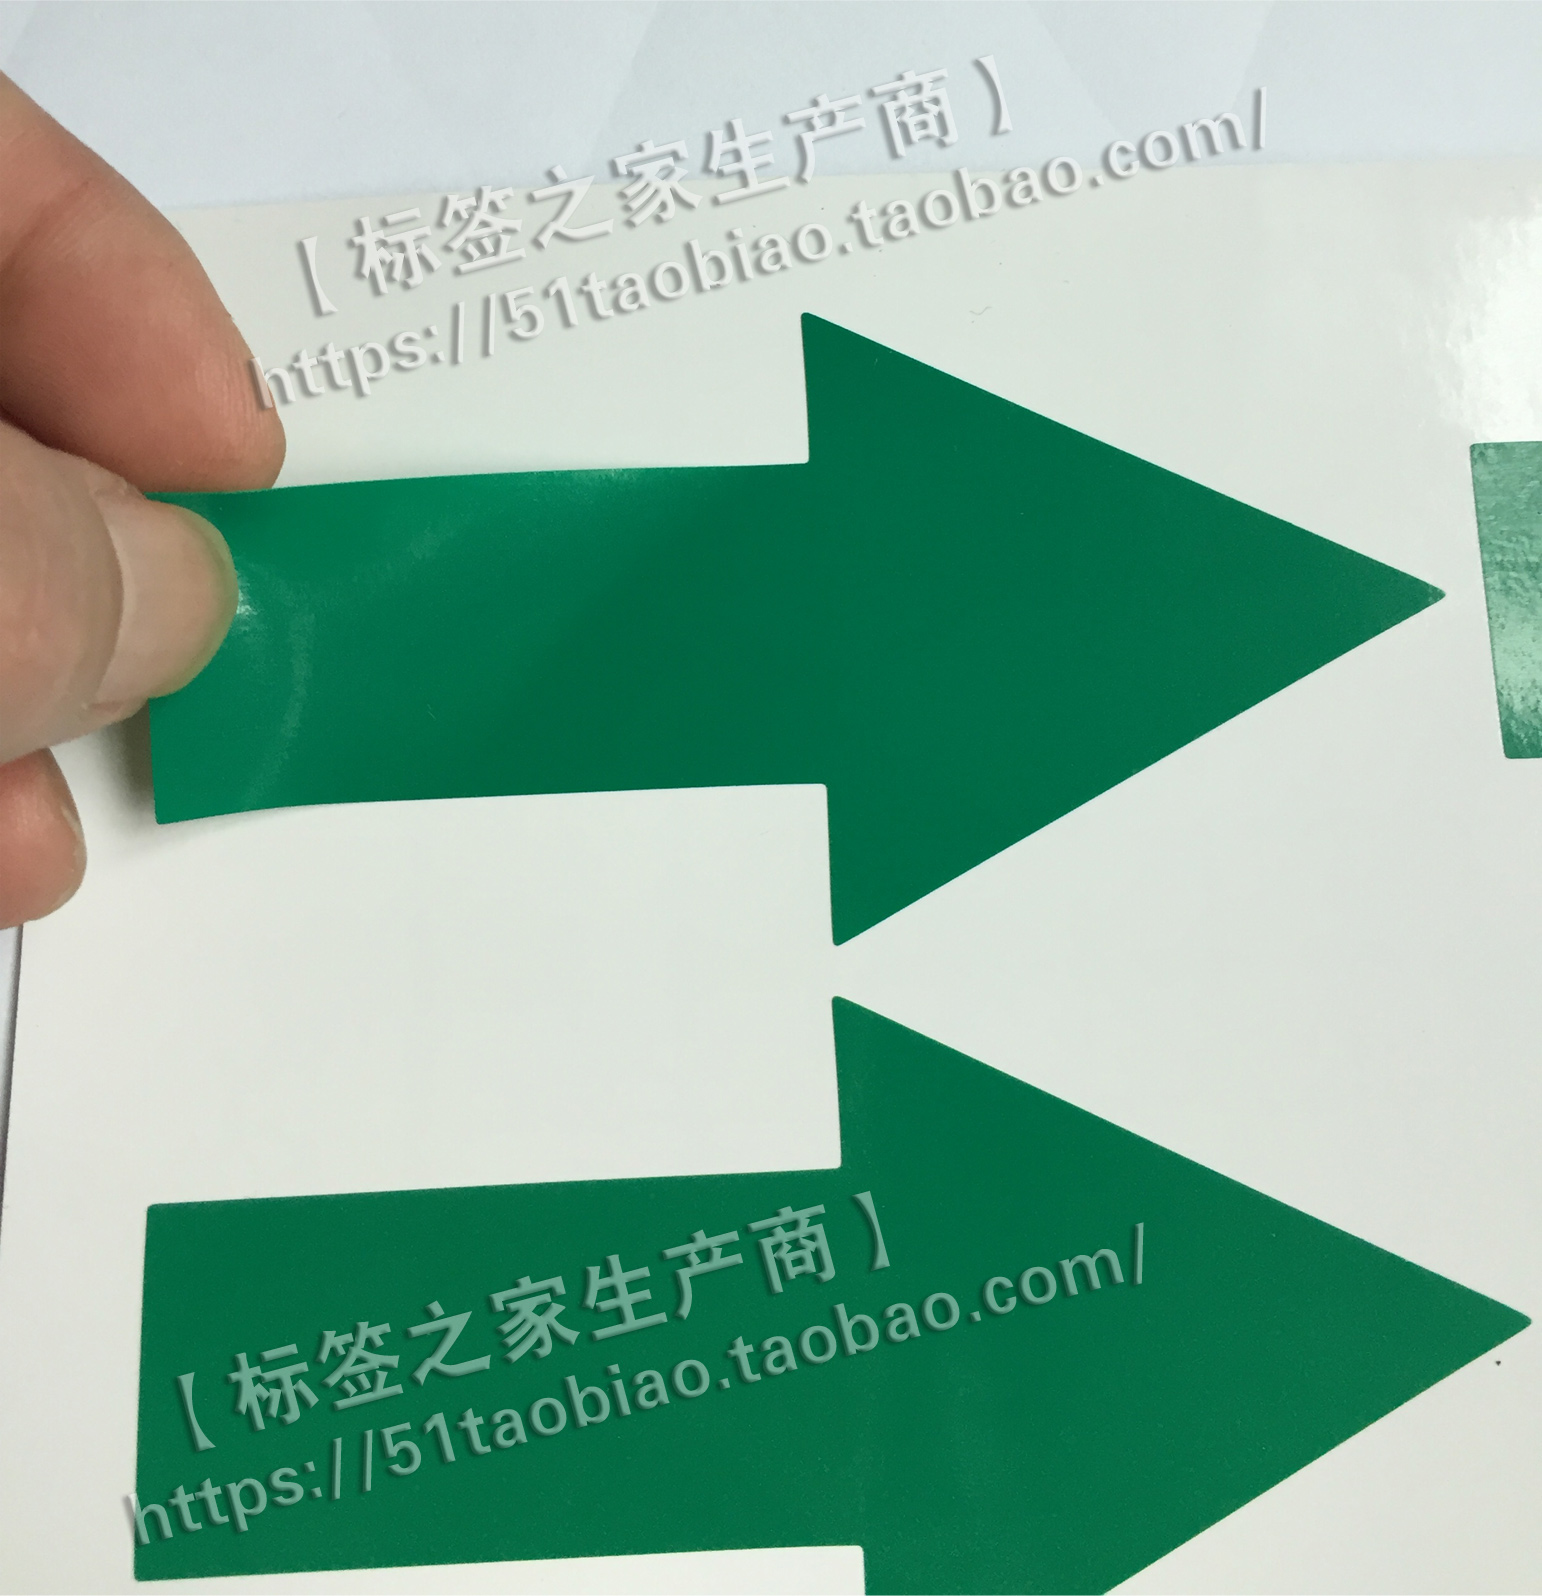 Waterproof and sunscreen green arrow indicator sticker without border green arrow PVC paste 10 * 5cm (100 pieces / 30 yuan)